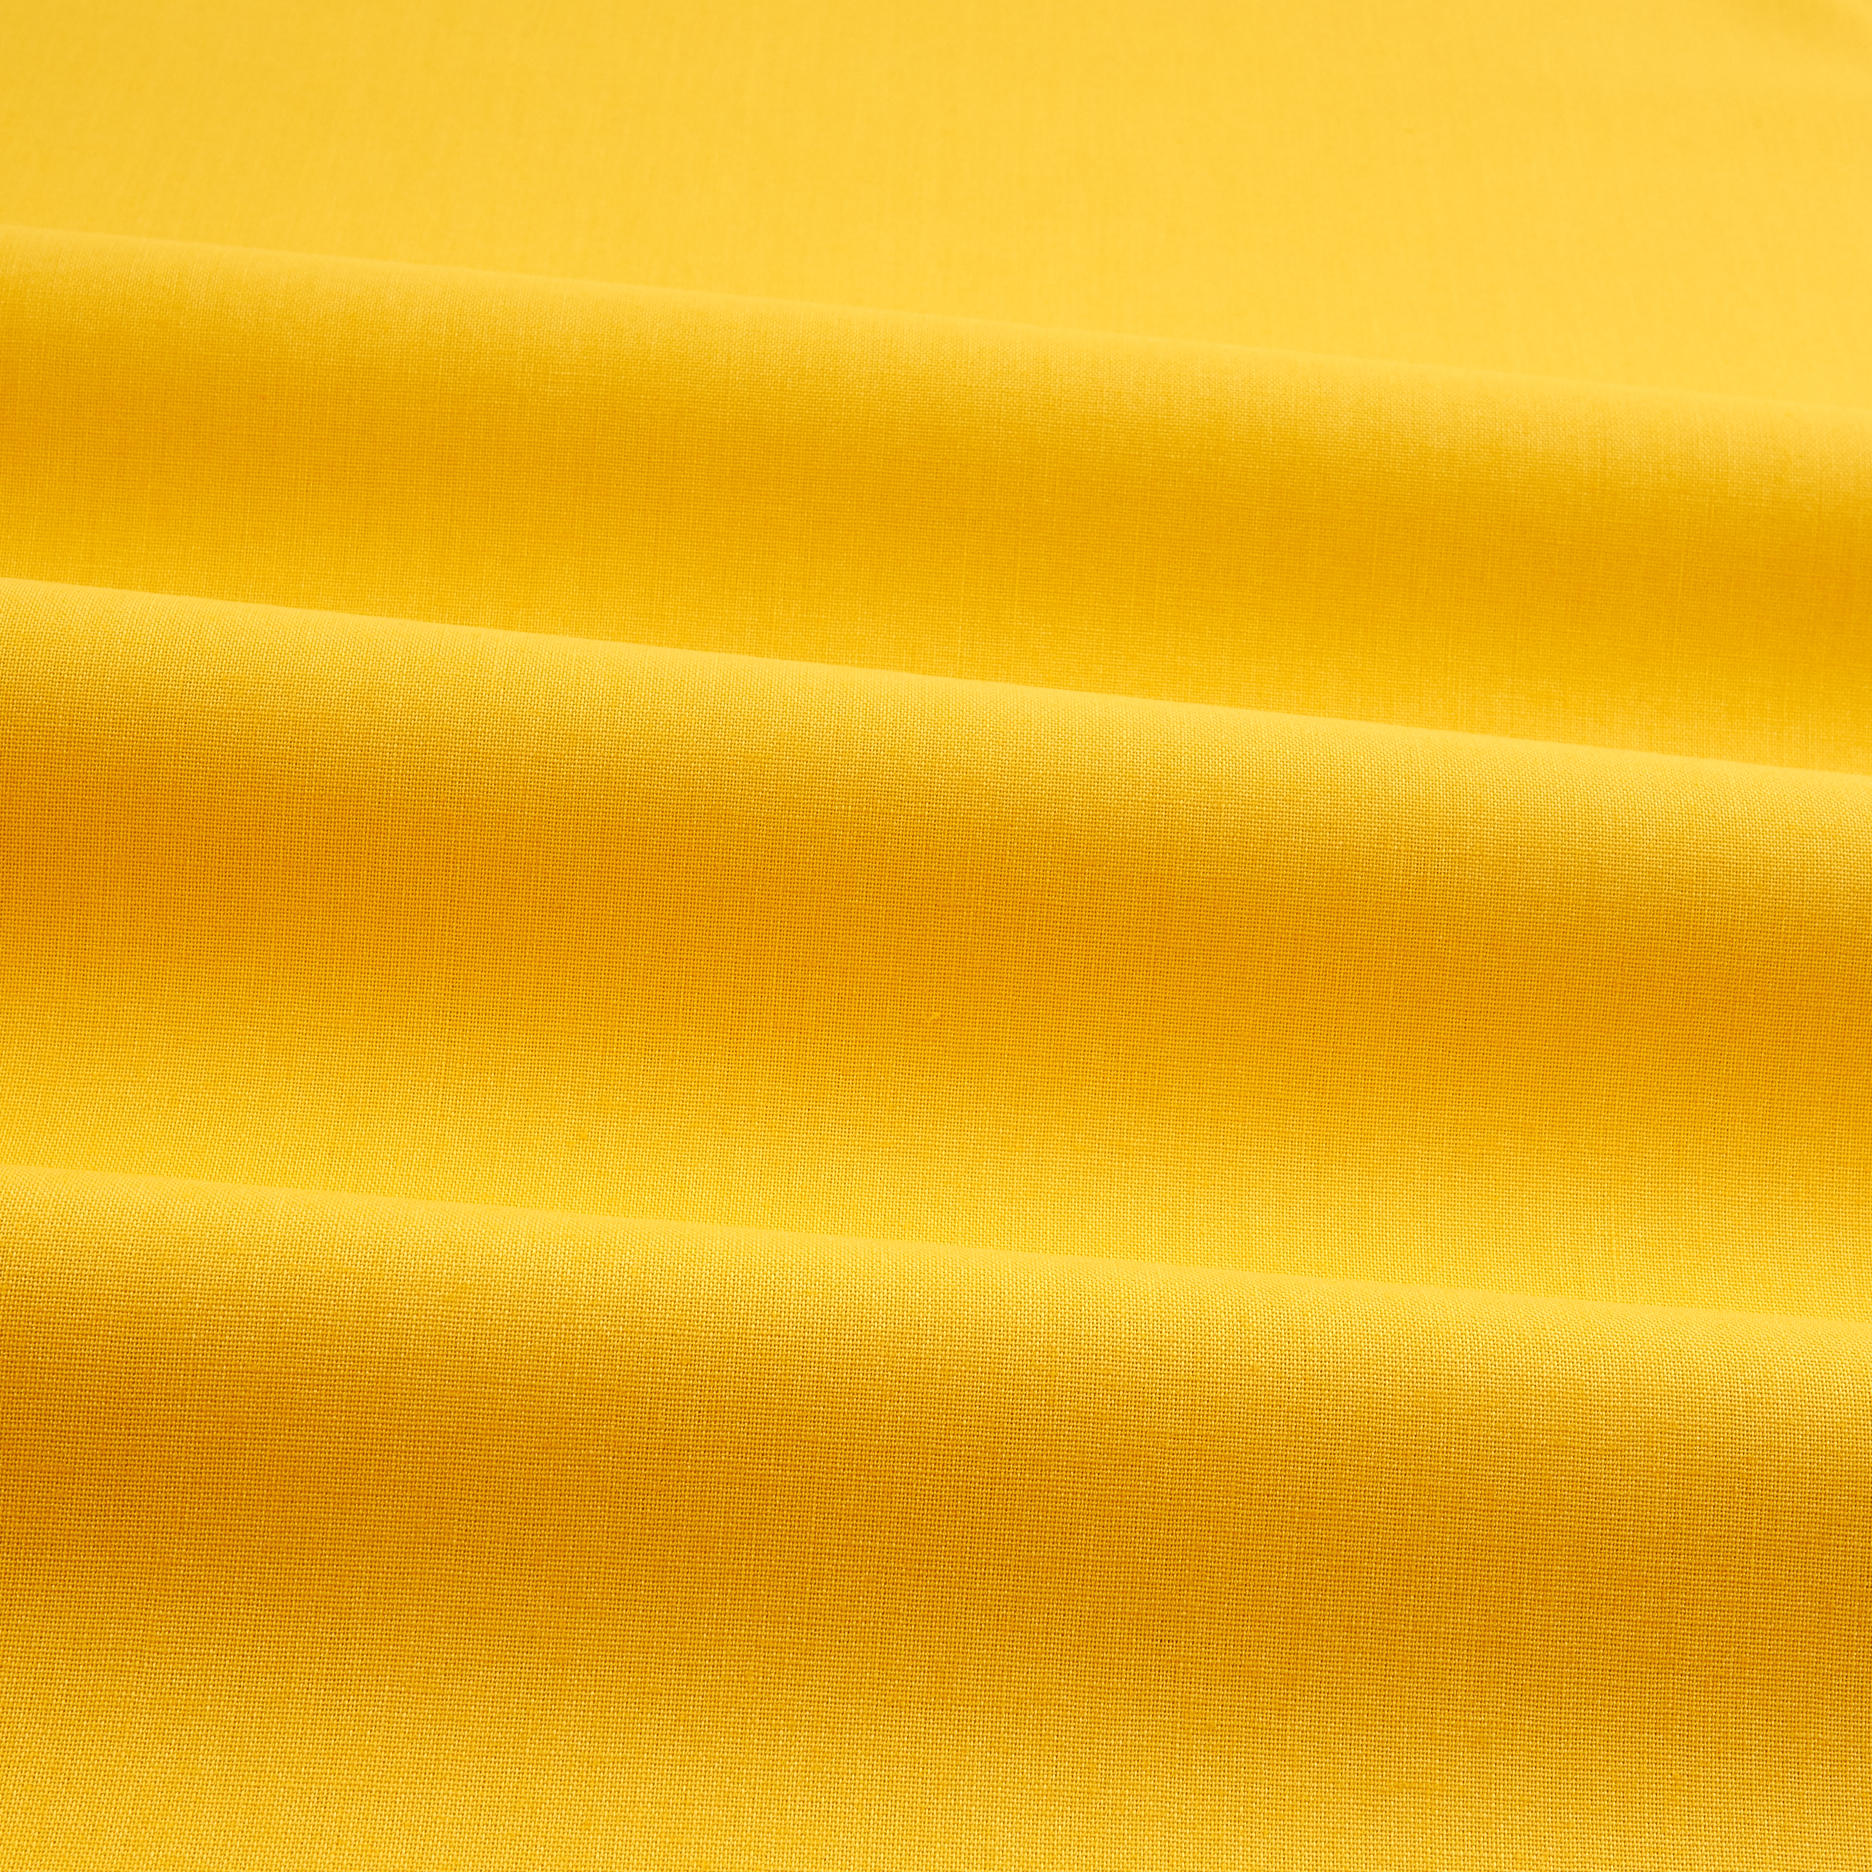 Kona Cotton Solid Corn Yellow Fabric